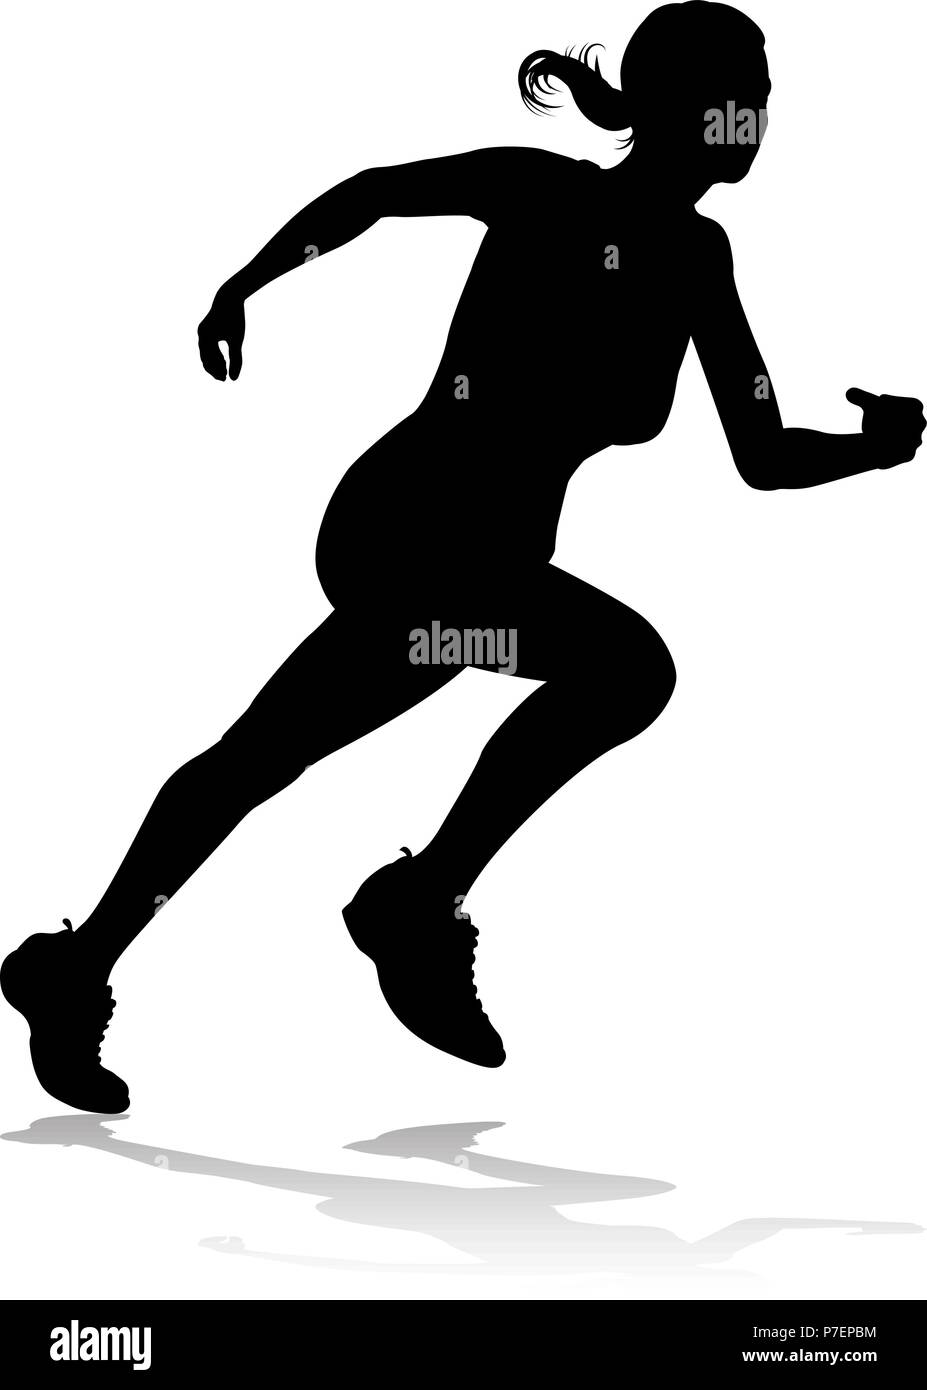 Runner Racing Track and Field Silhouette Stock Vector